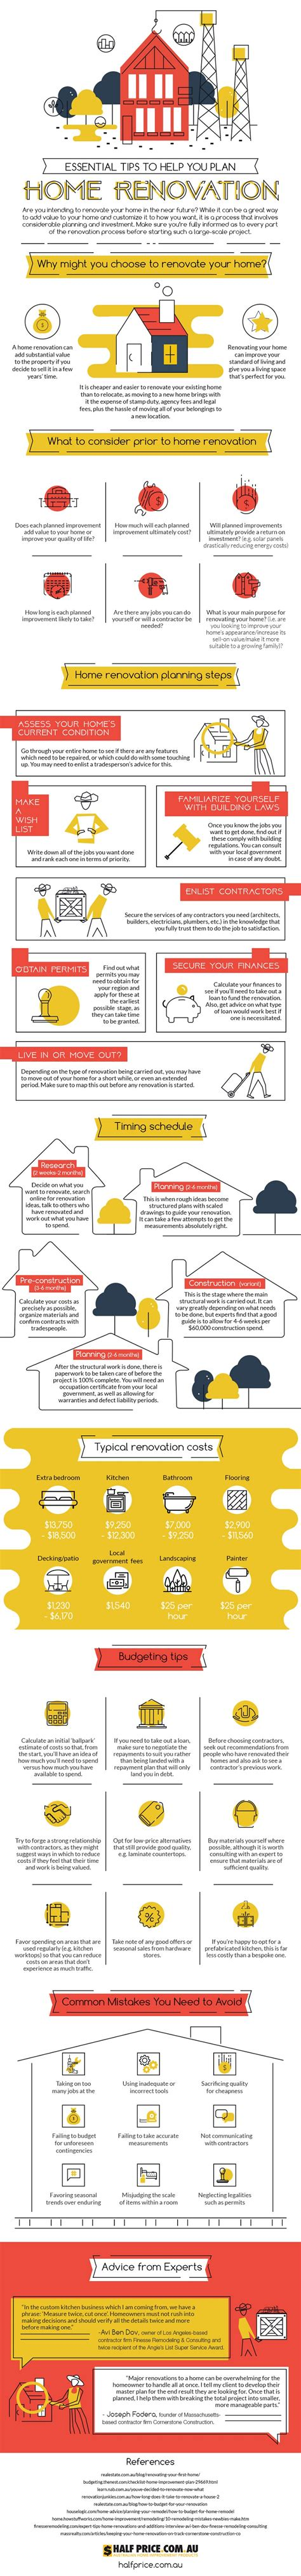 renovation tips essential tips to help you plan home renovation tfe times